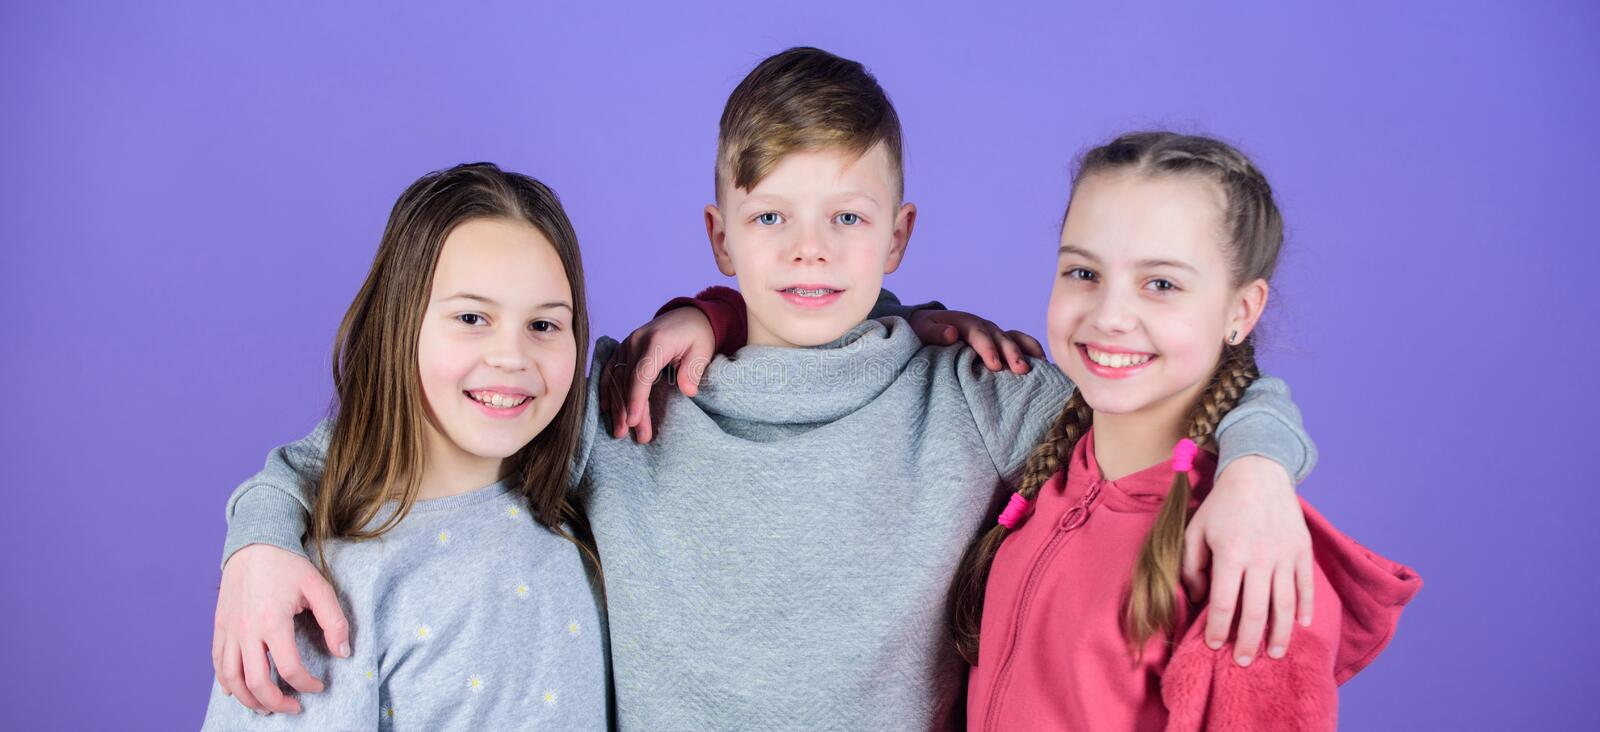 Relations and friendship. Happy to have such good friends. Teens friends. Girl and boy true friendship. Children smiling. Faces on violet background. Friends royalty free stock images